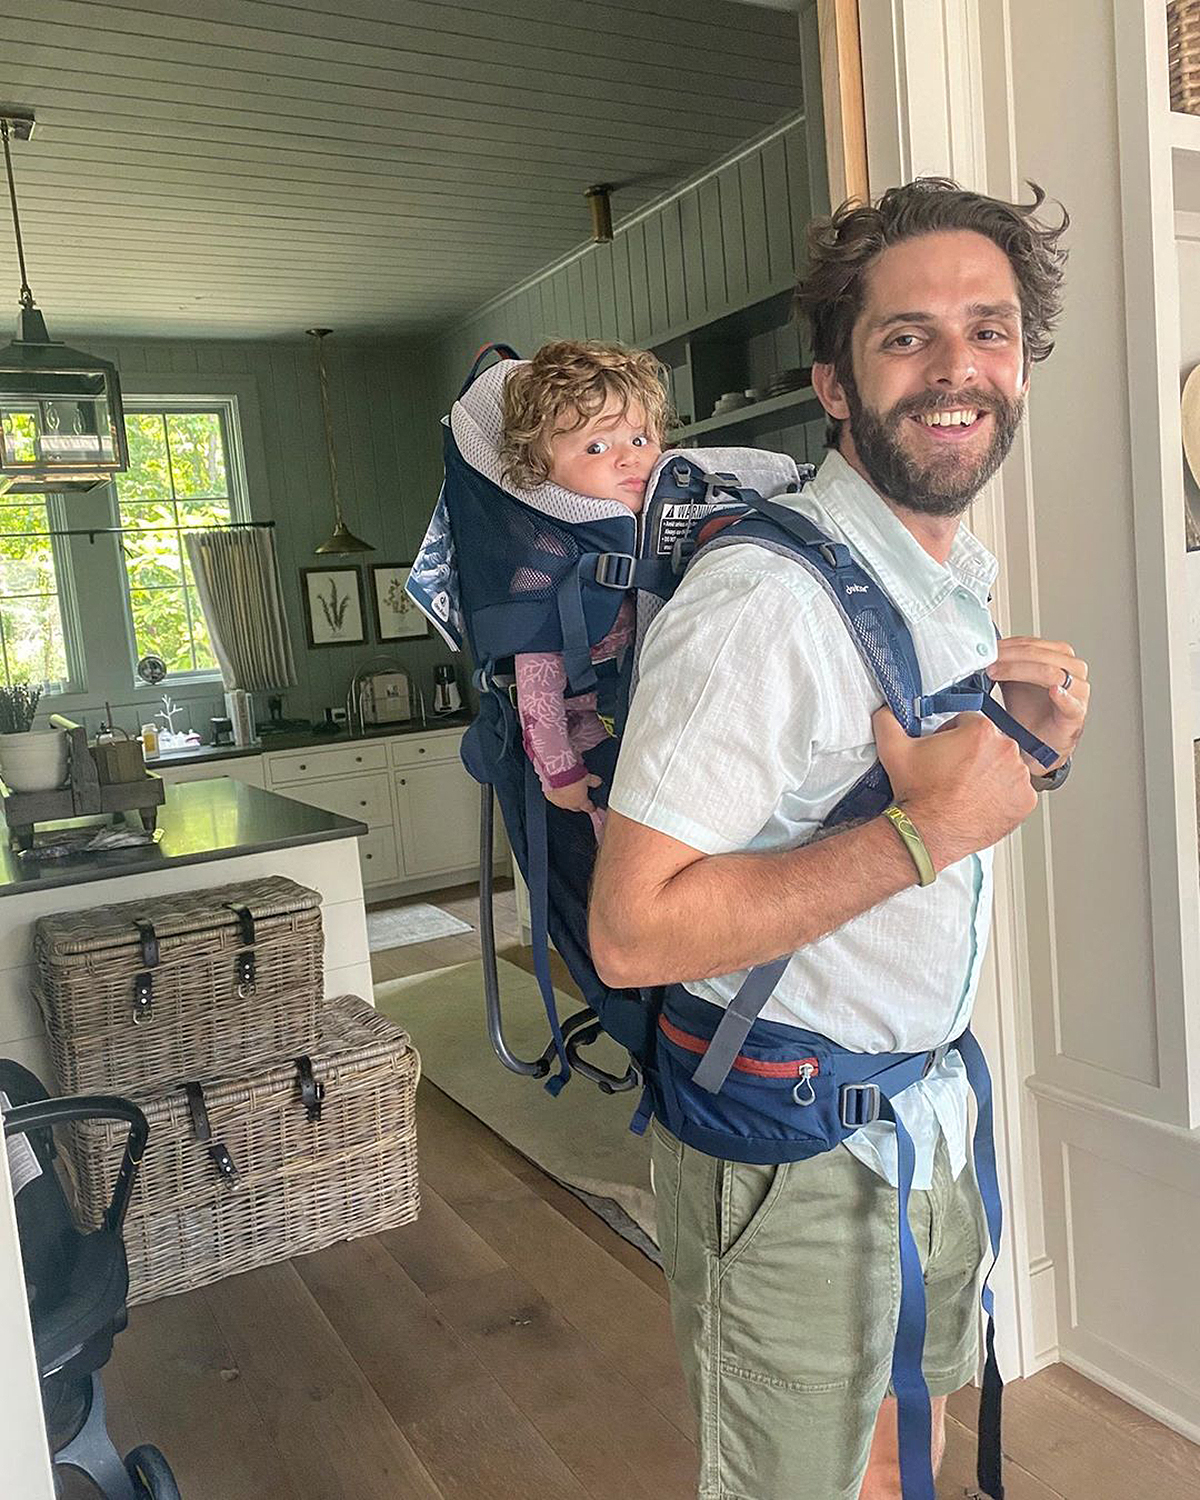 """That face says it all!                             """"Whatever calms them down 😂,"""" joked the country singer, carrying his youngest daughter, Lennon Love, 5 months, on his back in a baby carrier while hanging out in their country-chic kitchen.                             Rhett and his wife, Lauren Akins, also share Willa Gray, 4, and Ada James, 2."""